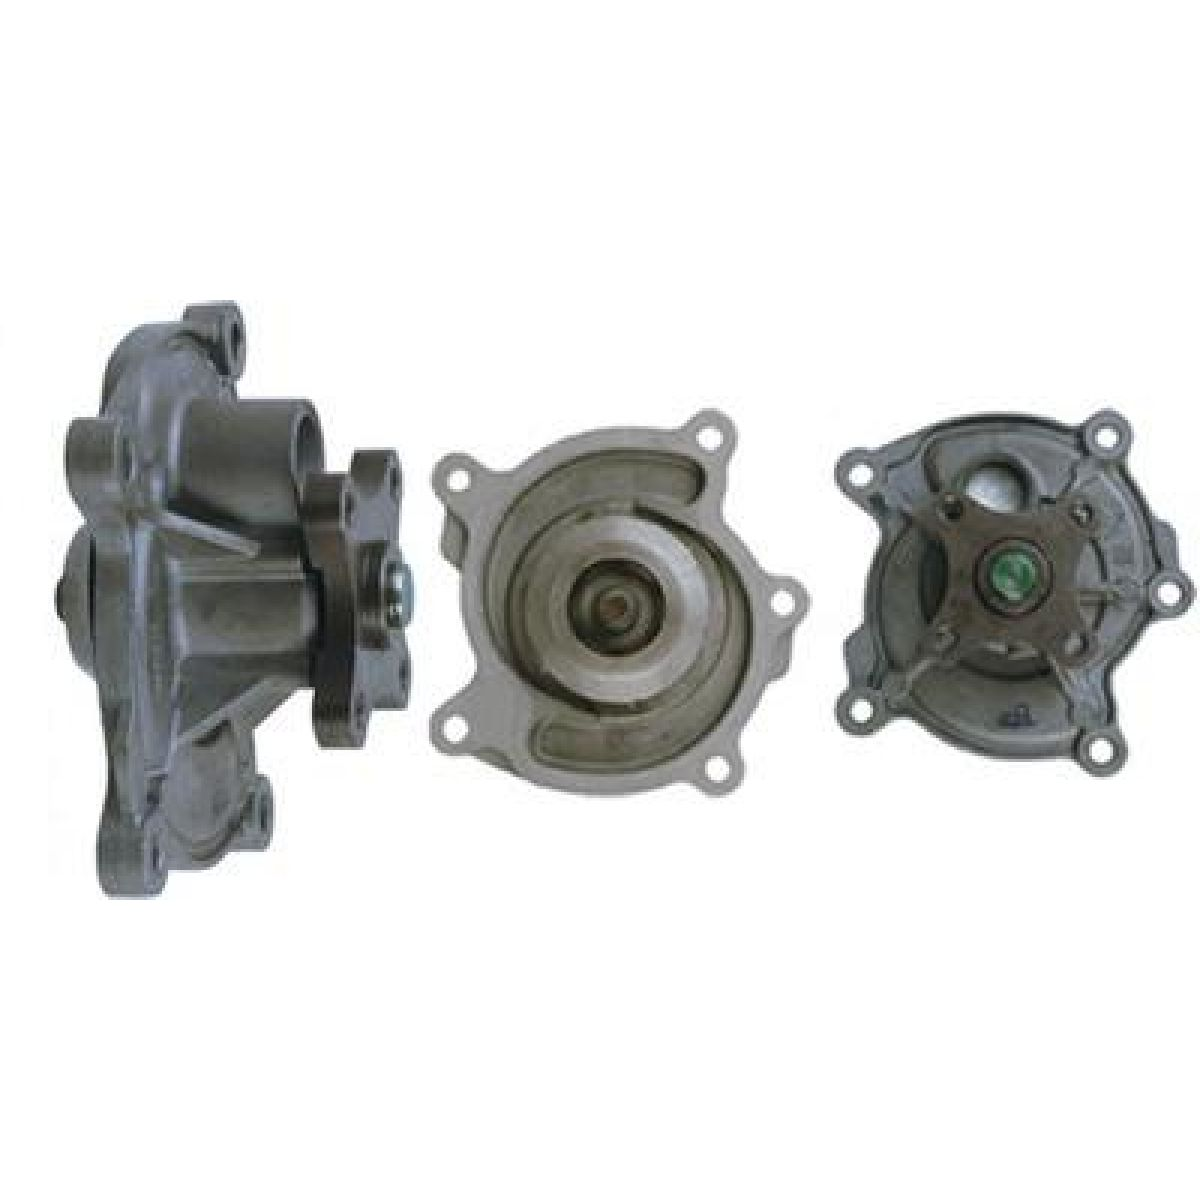 2003 Pontiac Montana Water Pump Engine Diagram In The Back For Chevy Buick Saturn Brand New 1200x1200